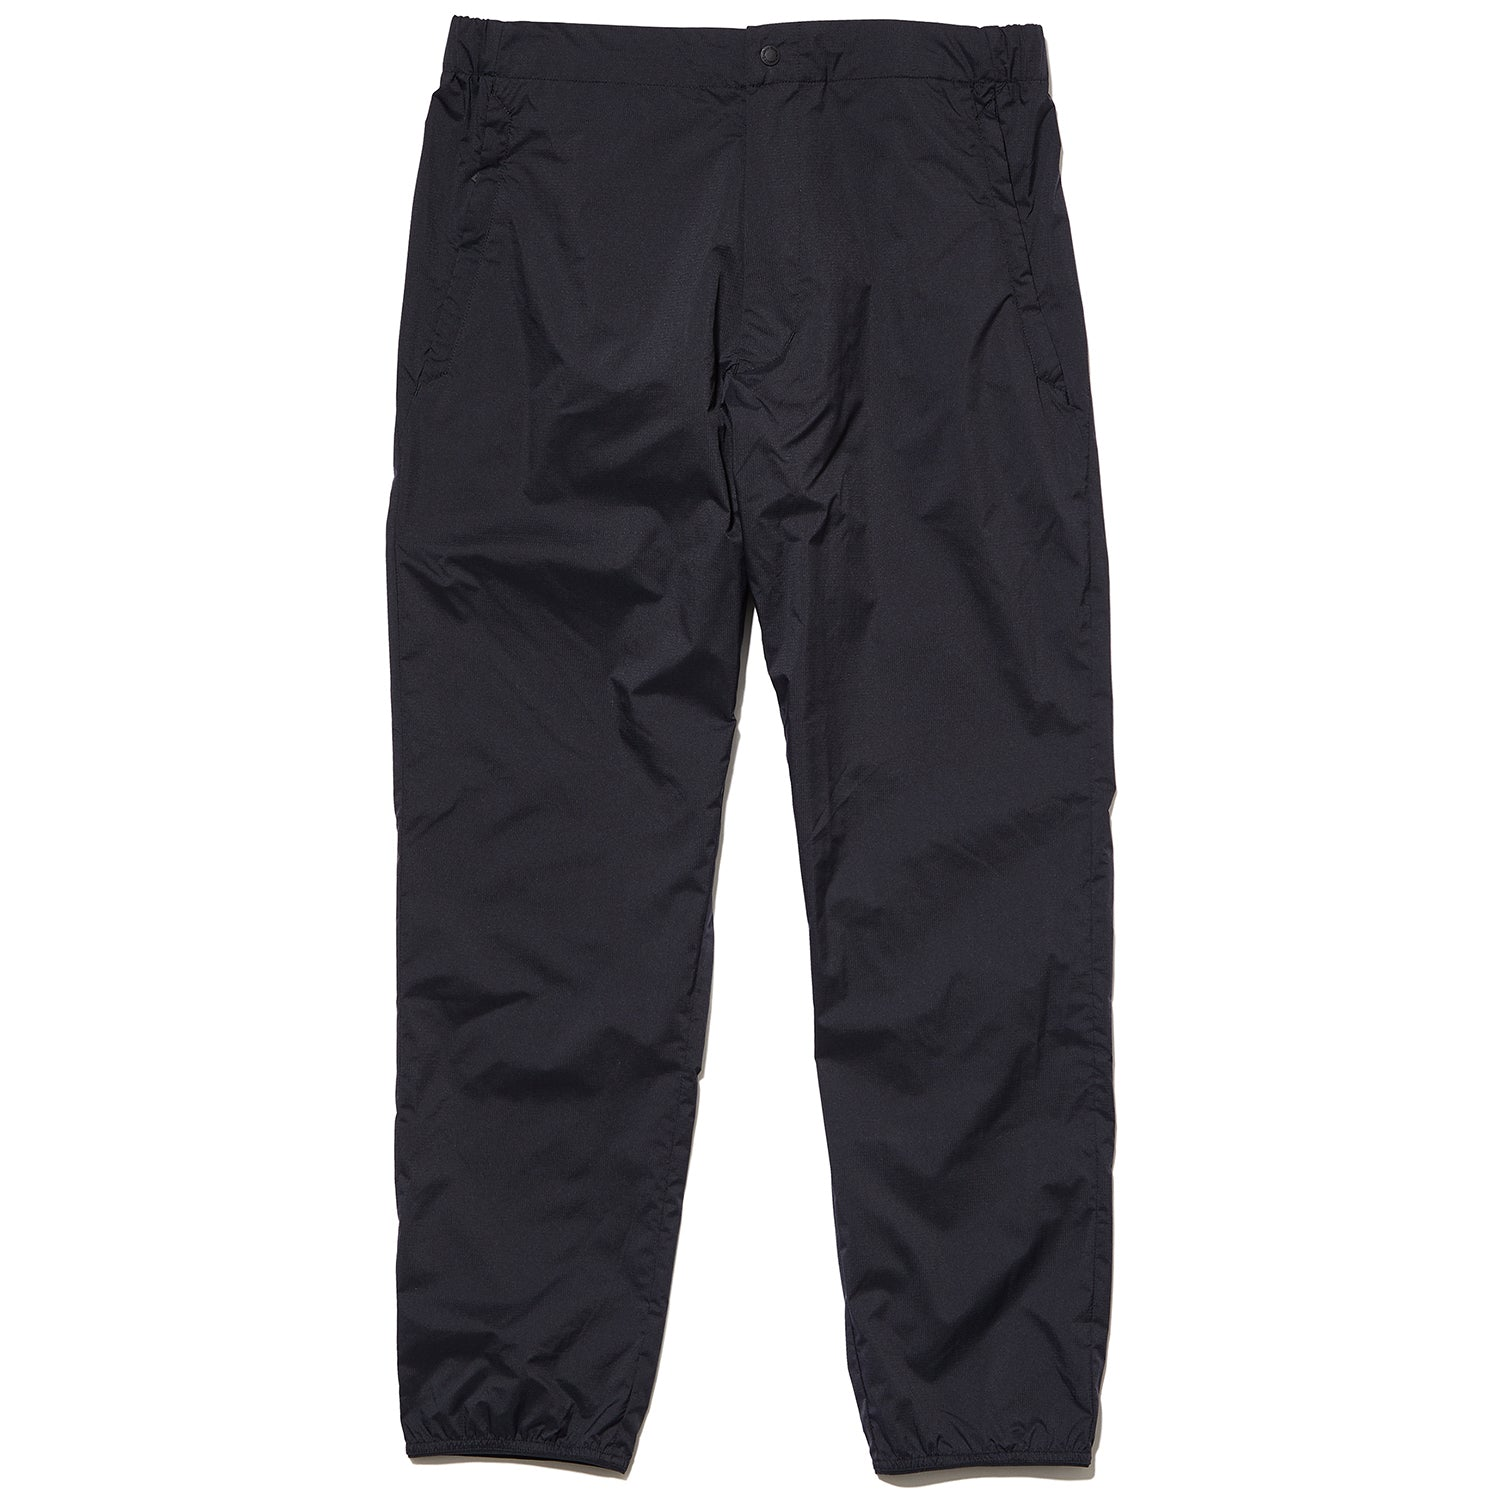 Woven Stretch 9/10 Pants